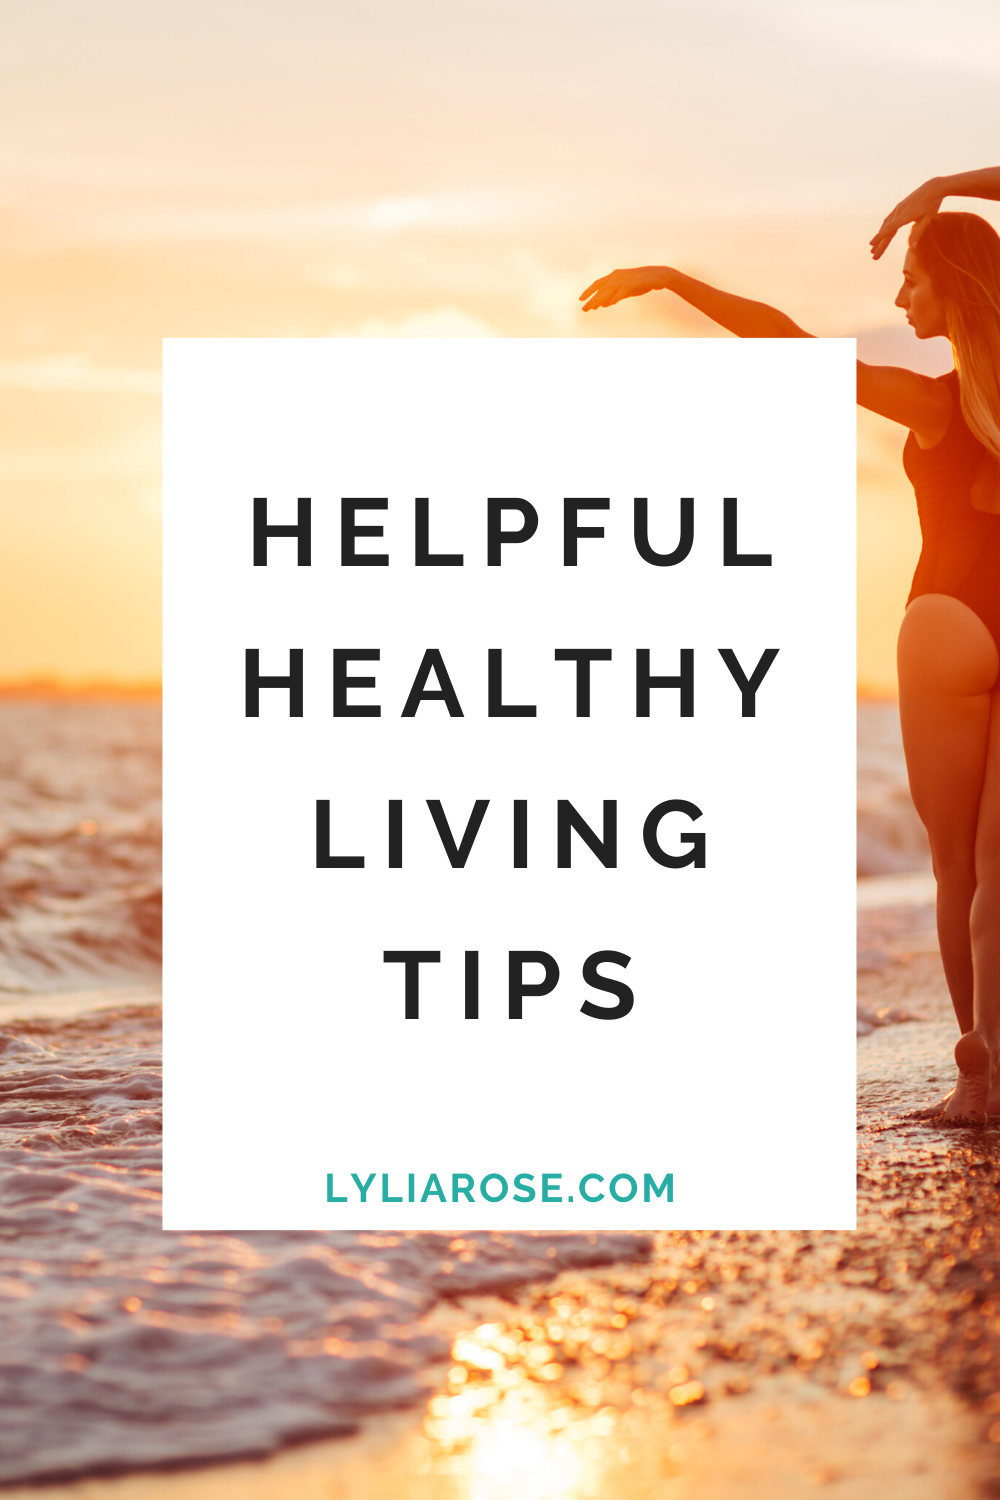 Helpful healthy living tips (1)